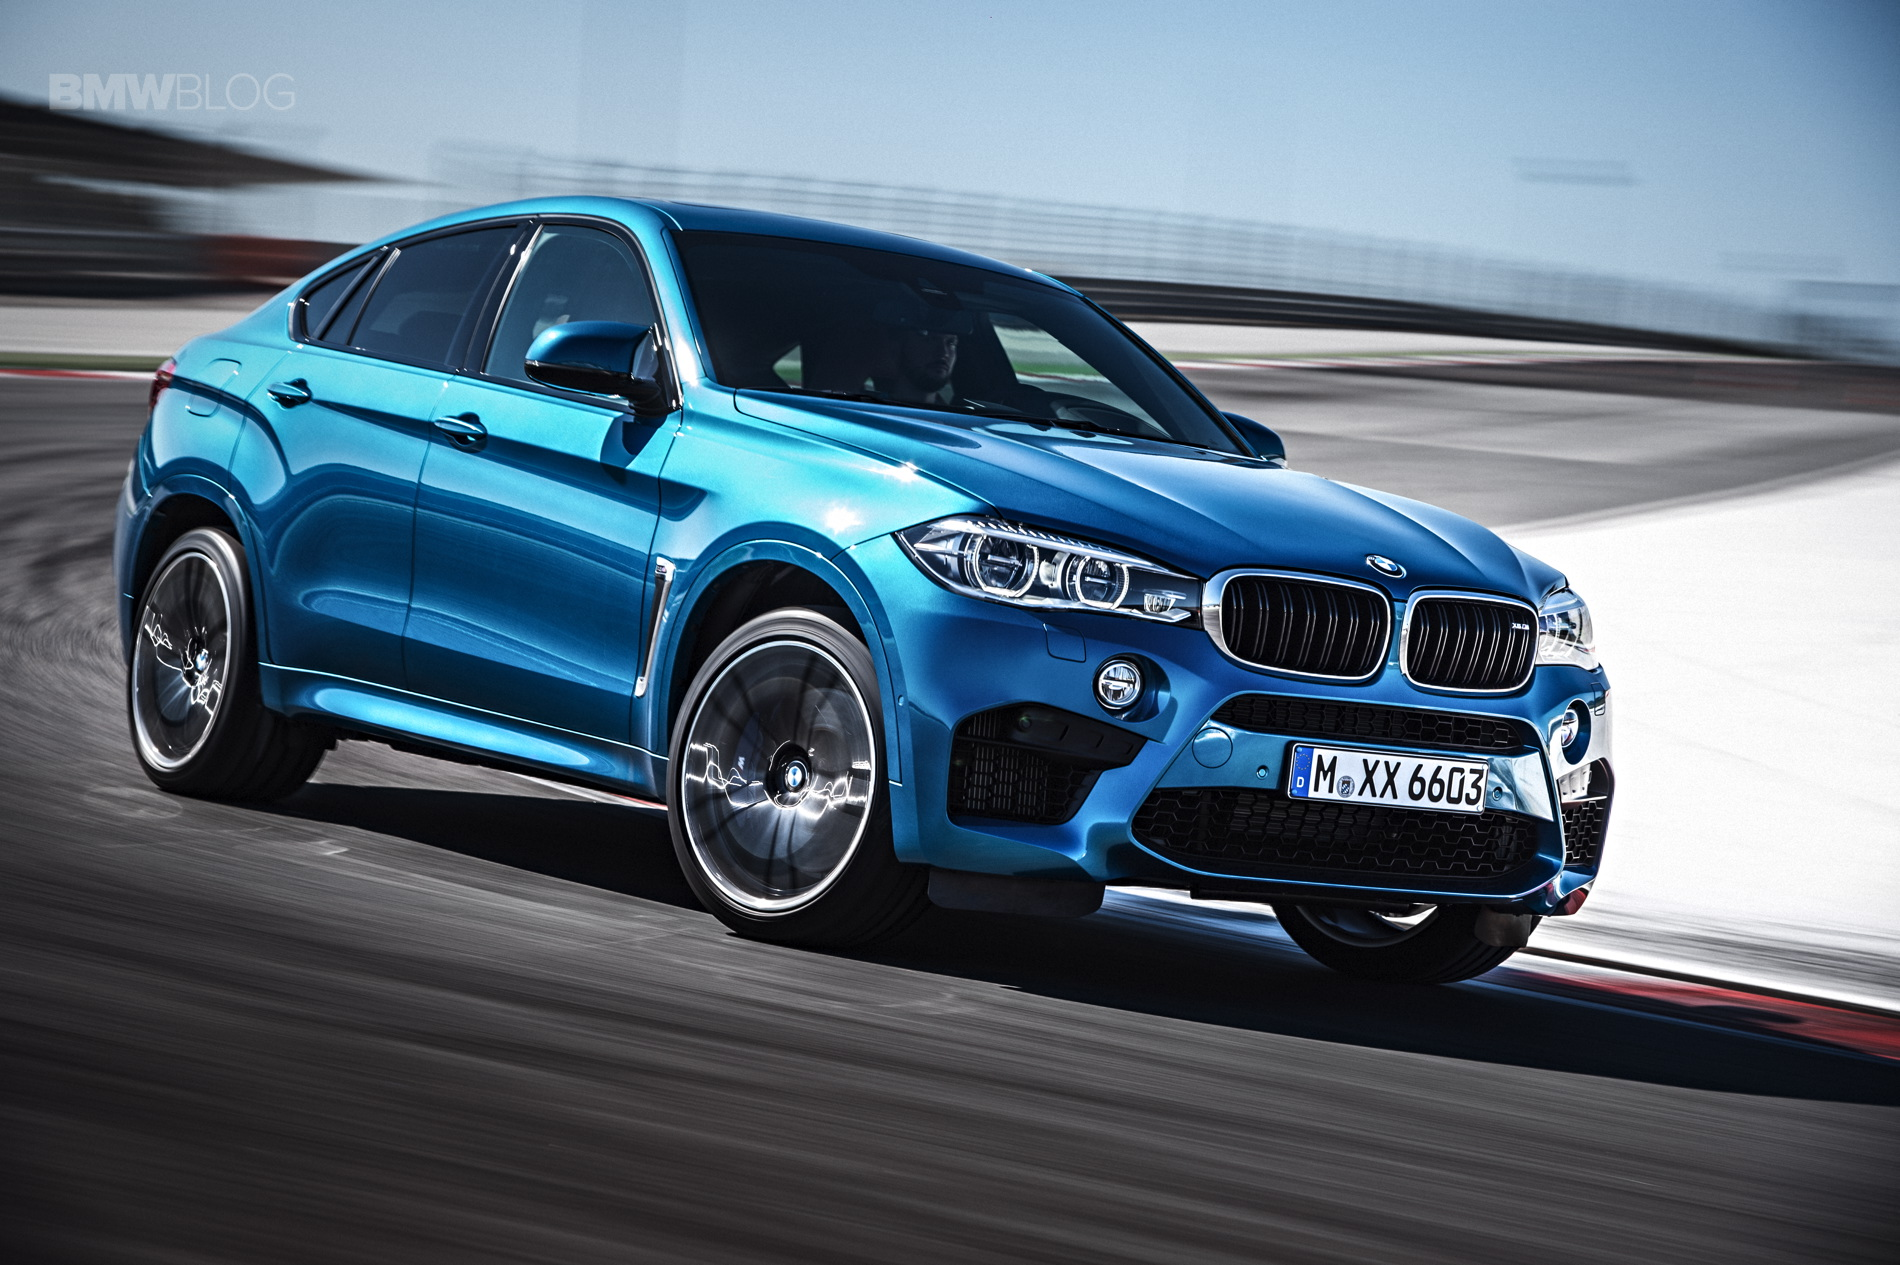 2015 Bmw X5 M And Bmw X6 M Ordering Guide And Options